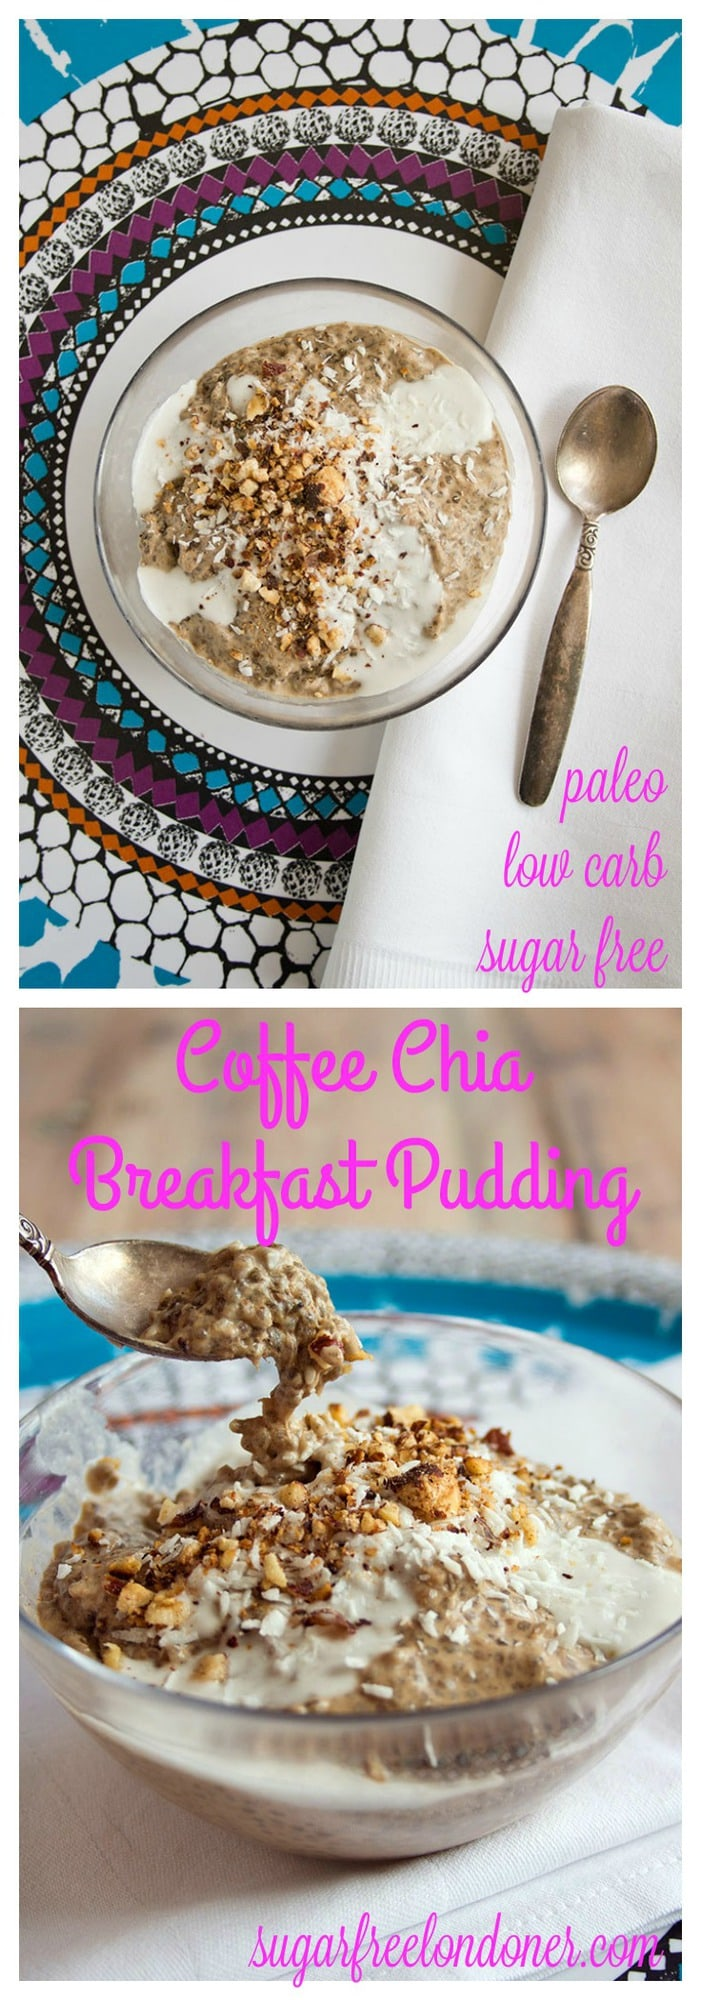 Easy to make and intensely delicious: Prepare this coffee chia breakfast pudding in advance and enjoy it the next morning. A sugar free, low carb, vegan and gluten free breakfast. #lowcarb #sugarfree #chia